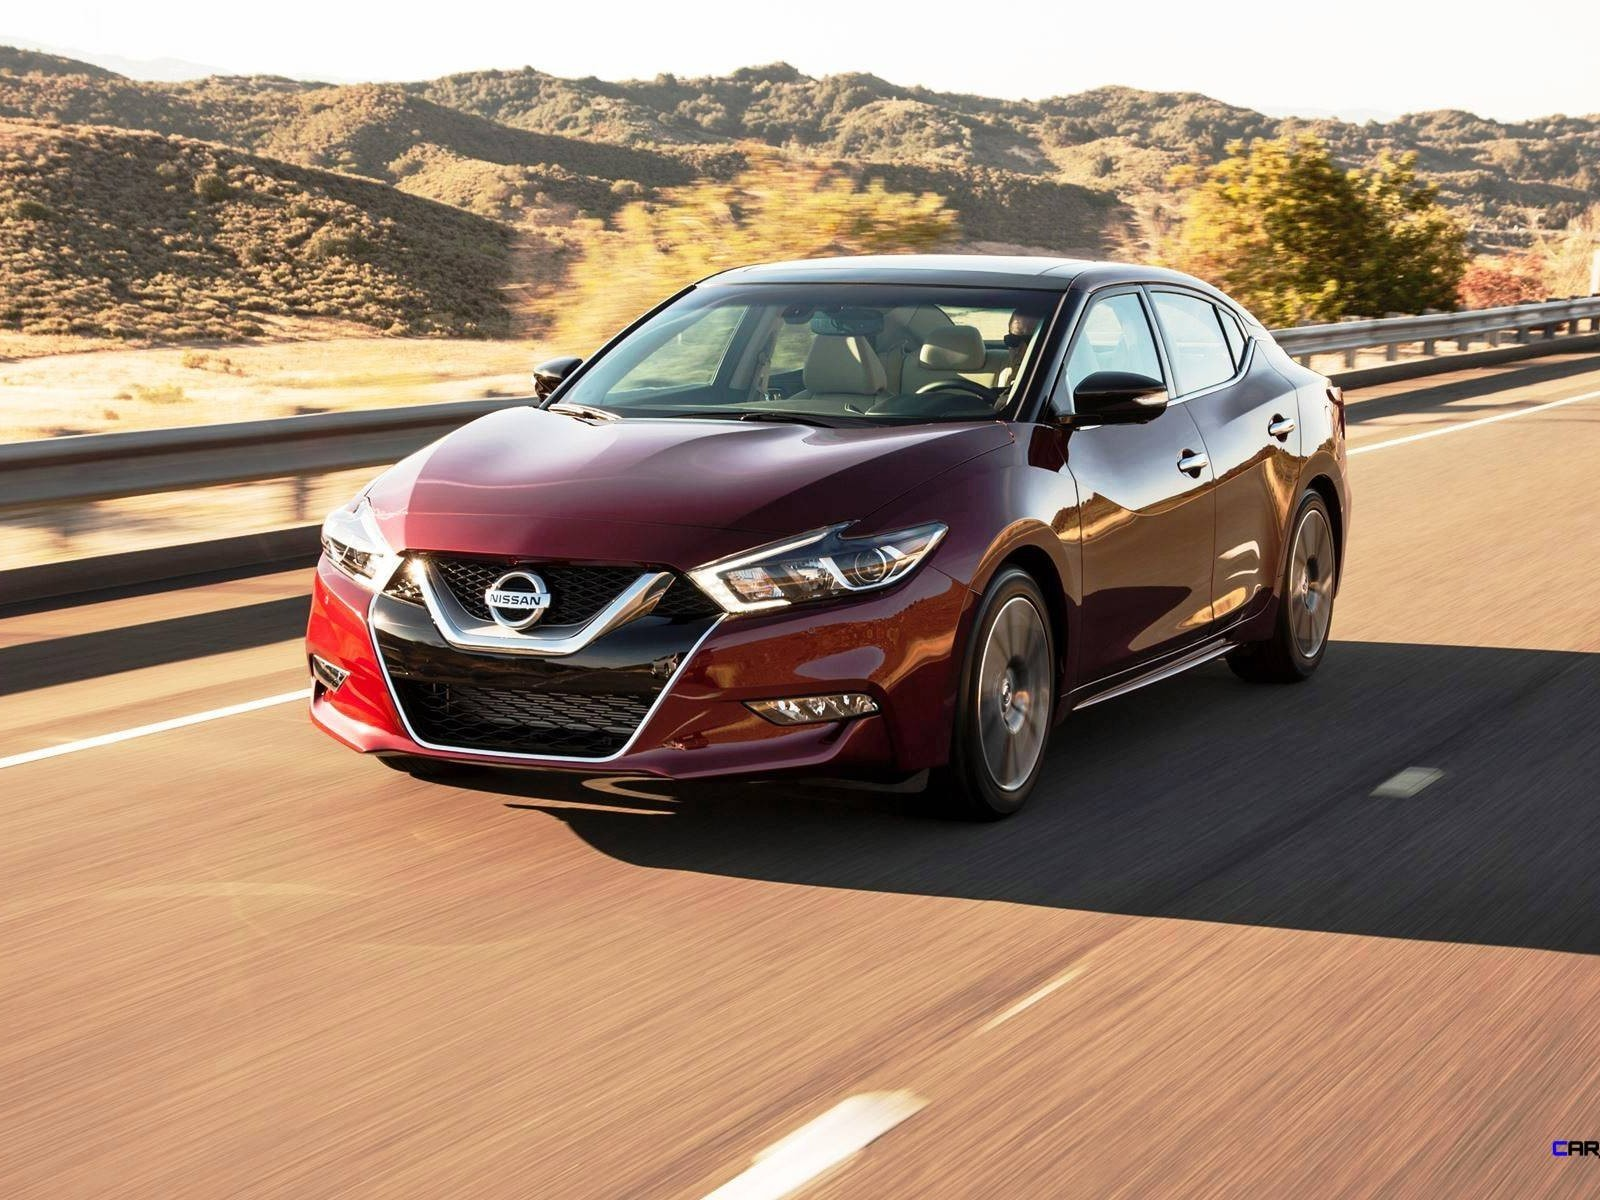 2015 nissan maxima sport sedan pictures to pin on pinterest pinsdaddy. Black Bedroom Furniture Sets. Home Design Ideas